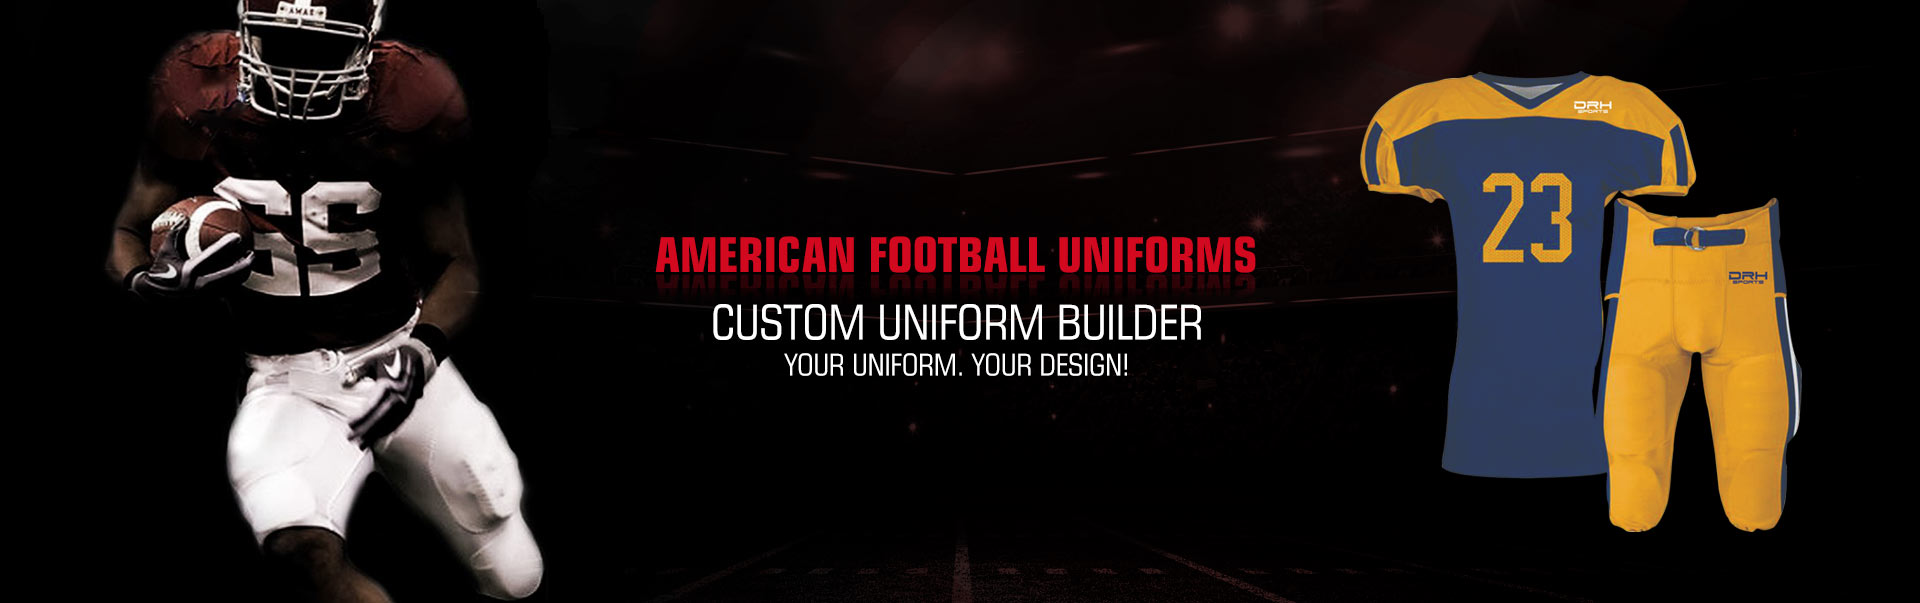 American Football Uniform Wholesaler, Suppliers in Lleida